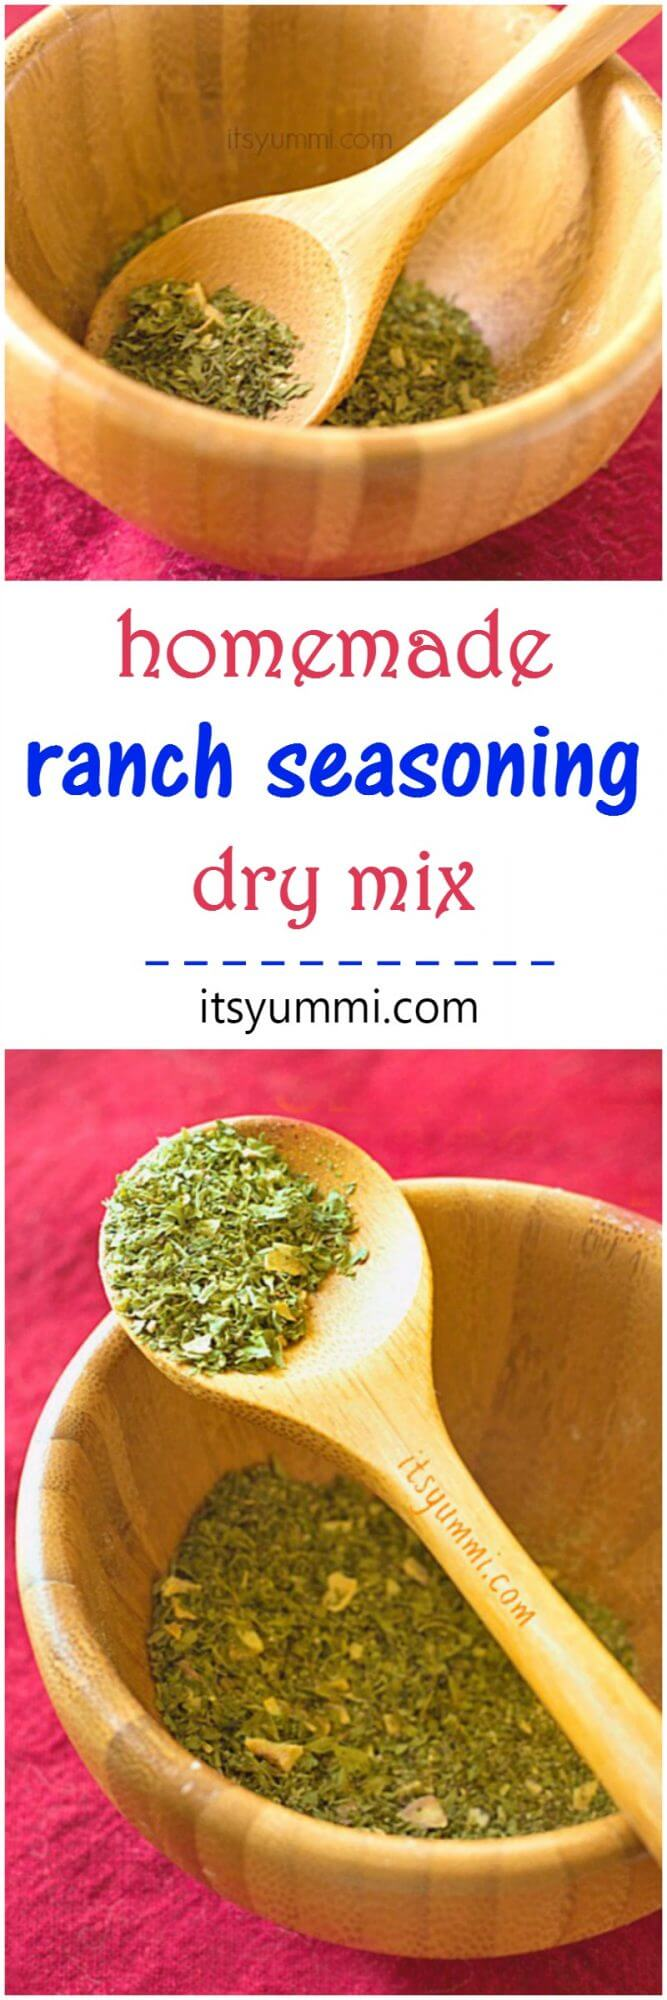 Homemade Ranch Seasoning Mix - Make it yourself and save money (PLUS no nasty preservatives or chemicals) - Recipe from @itsyummi